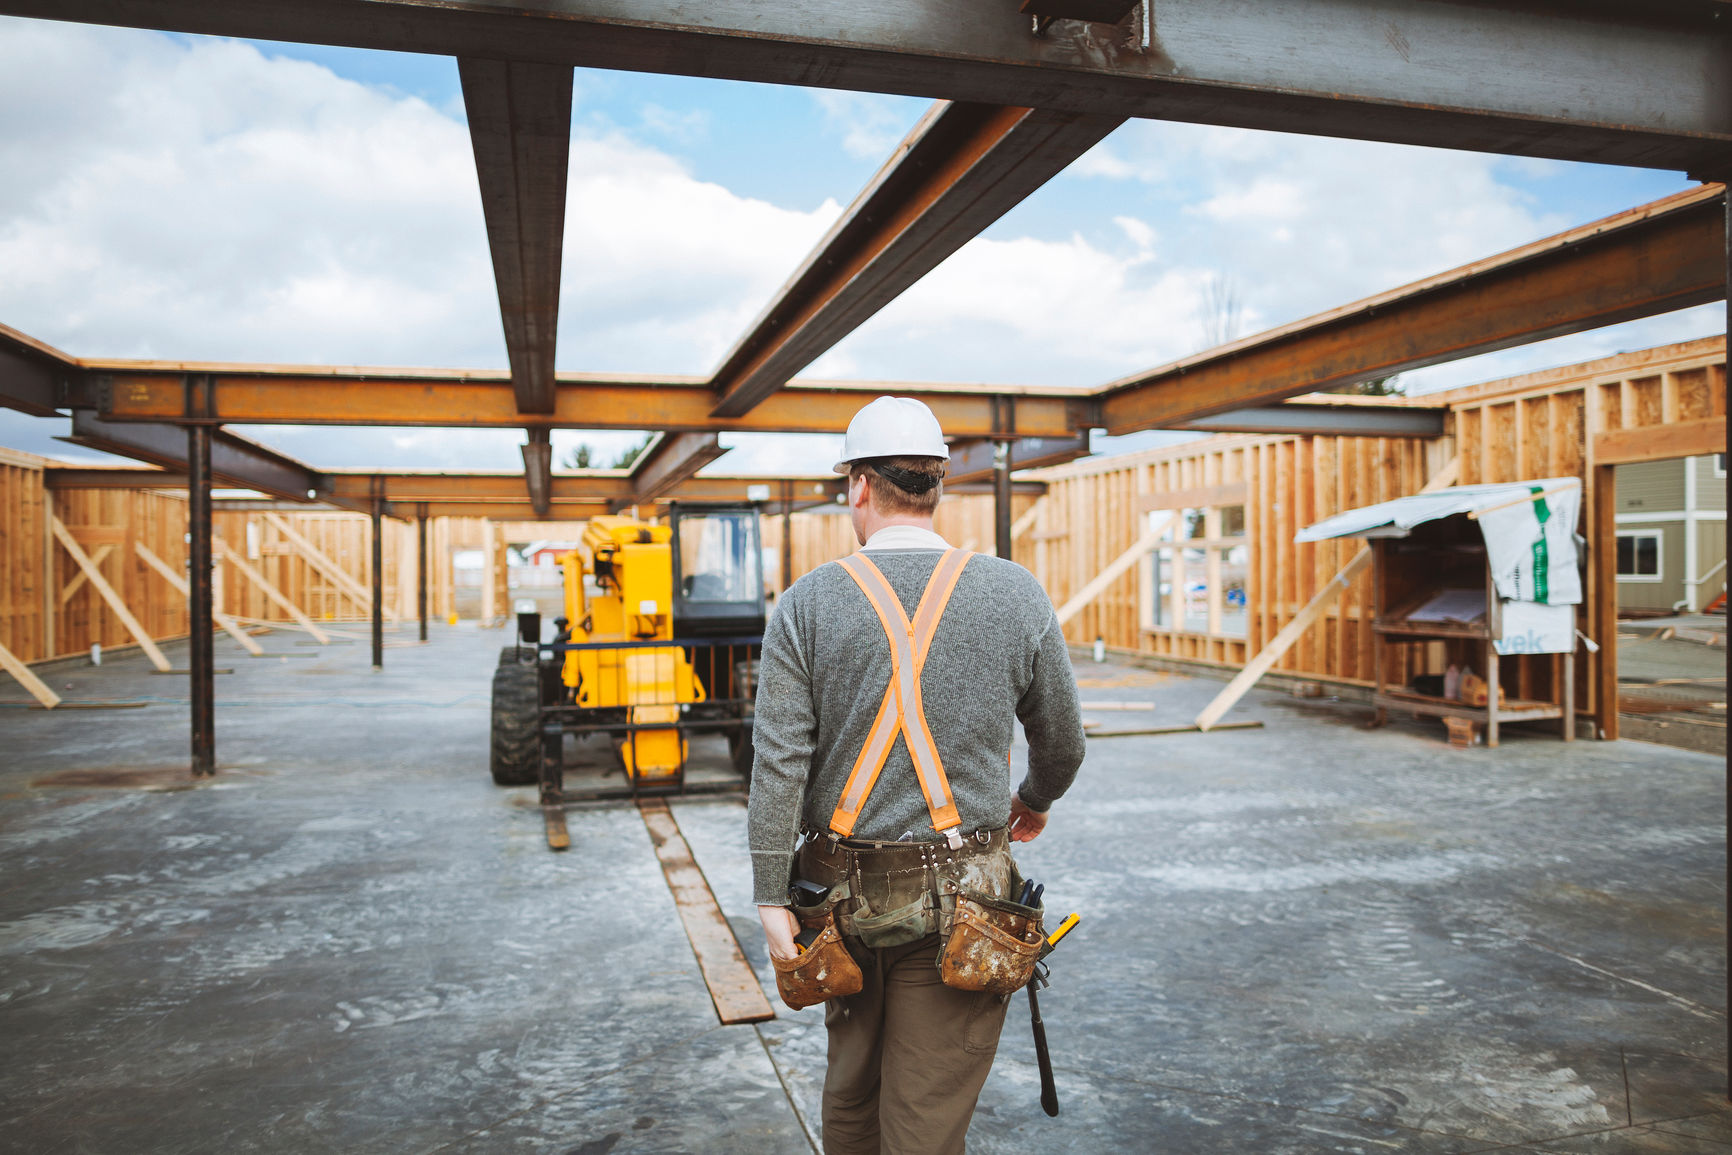 Contractor Management   Prime contractors are responsible compliance and safety requirements of all subcontractors. A strong Contractor Safety Management Program helps to reduce the risk of unsafe subcontractor practices.